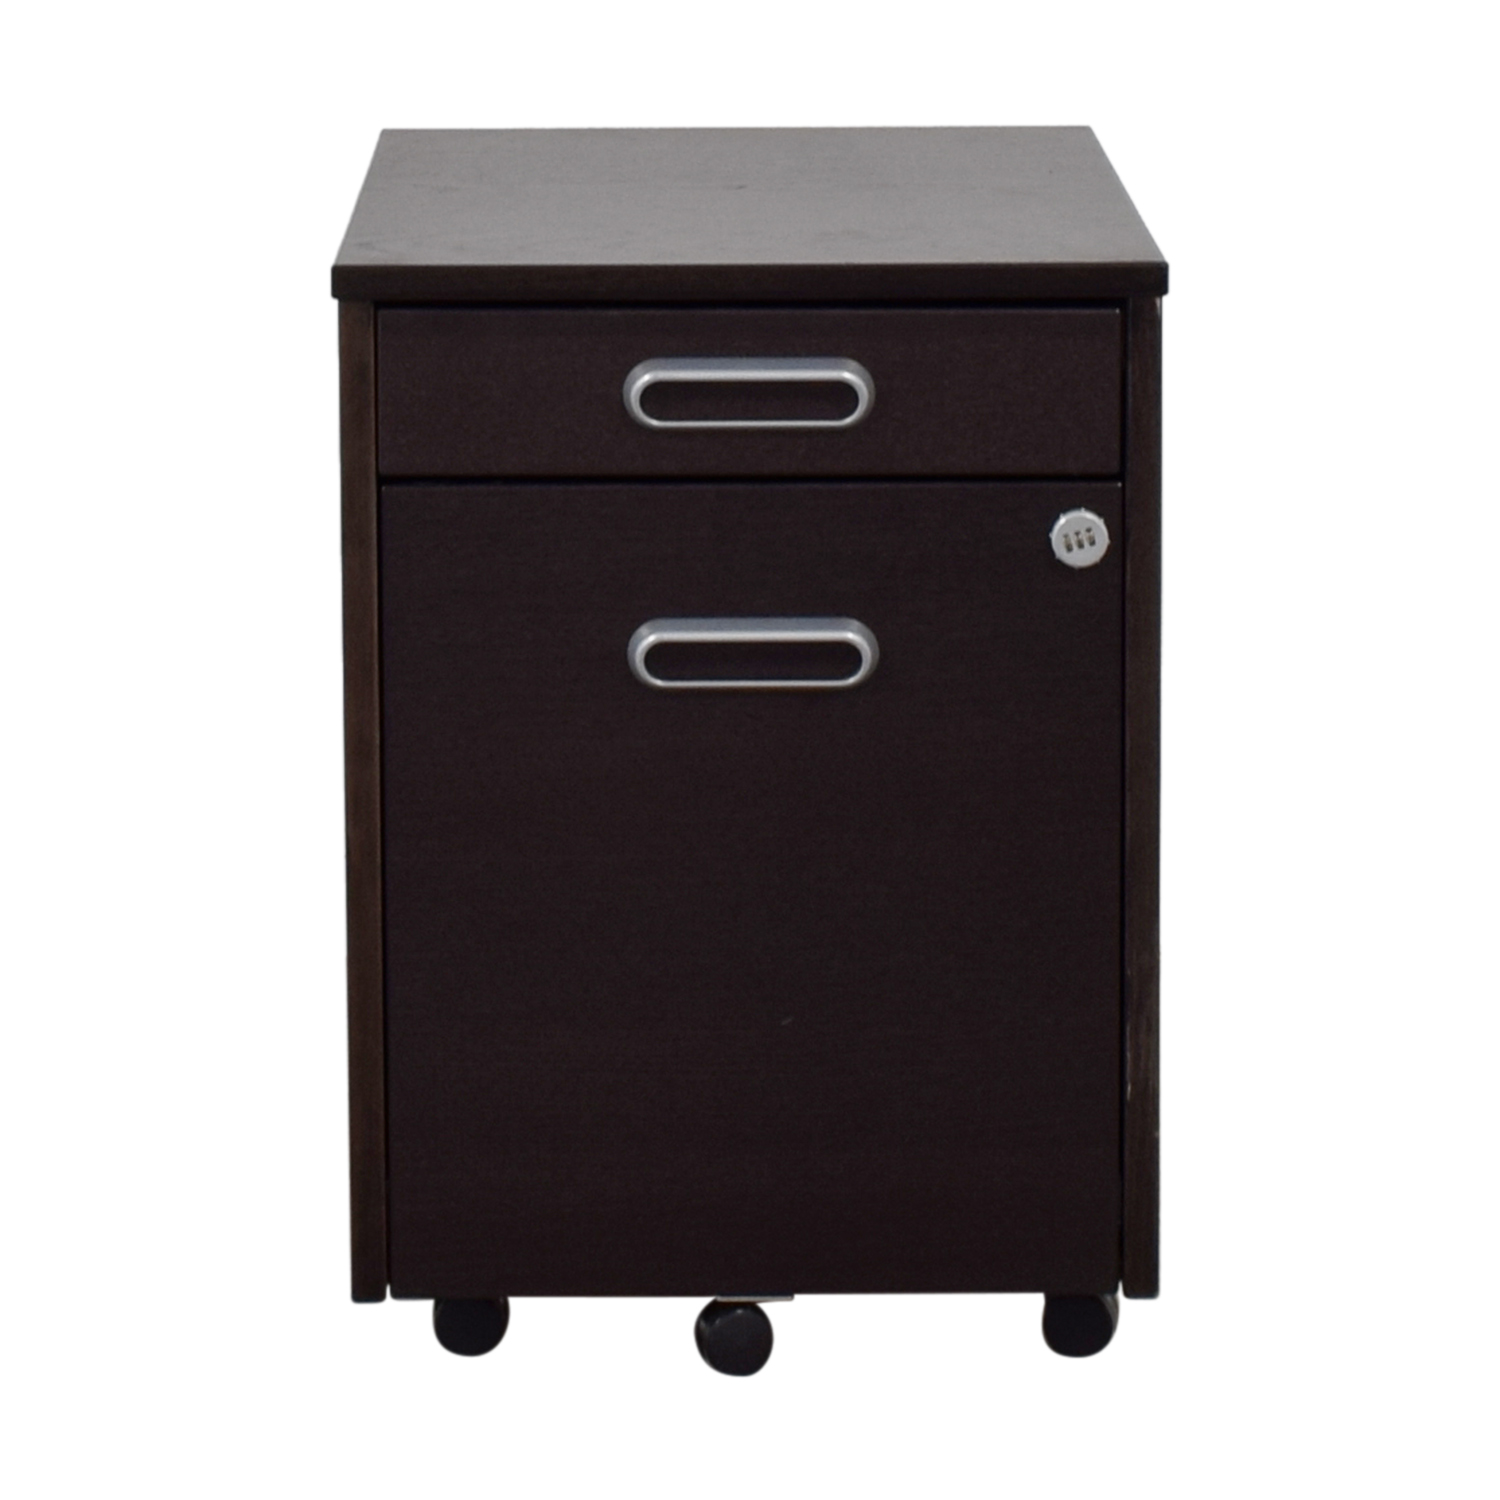 IKEA IKEA Grey Four-Drawer File Cabinet second hand